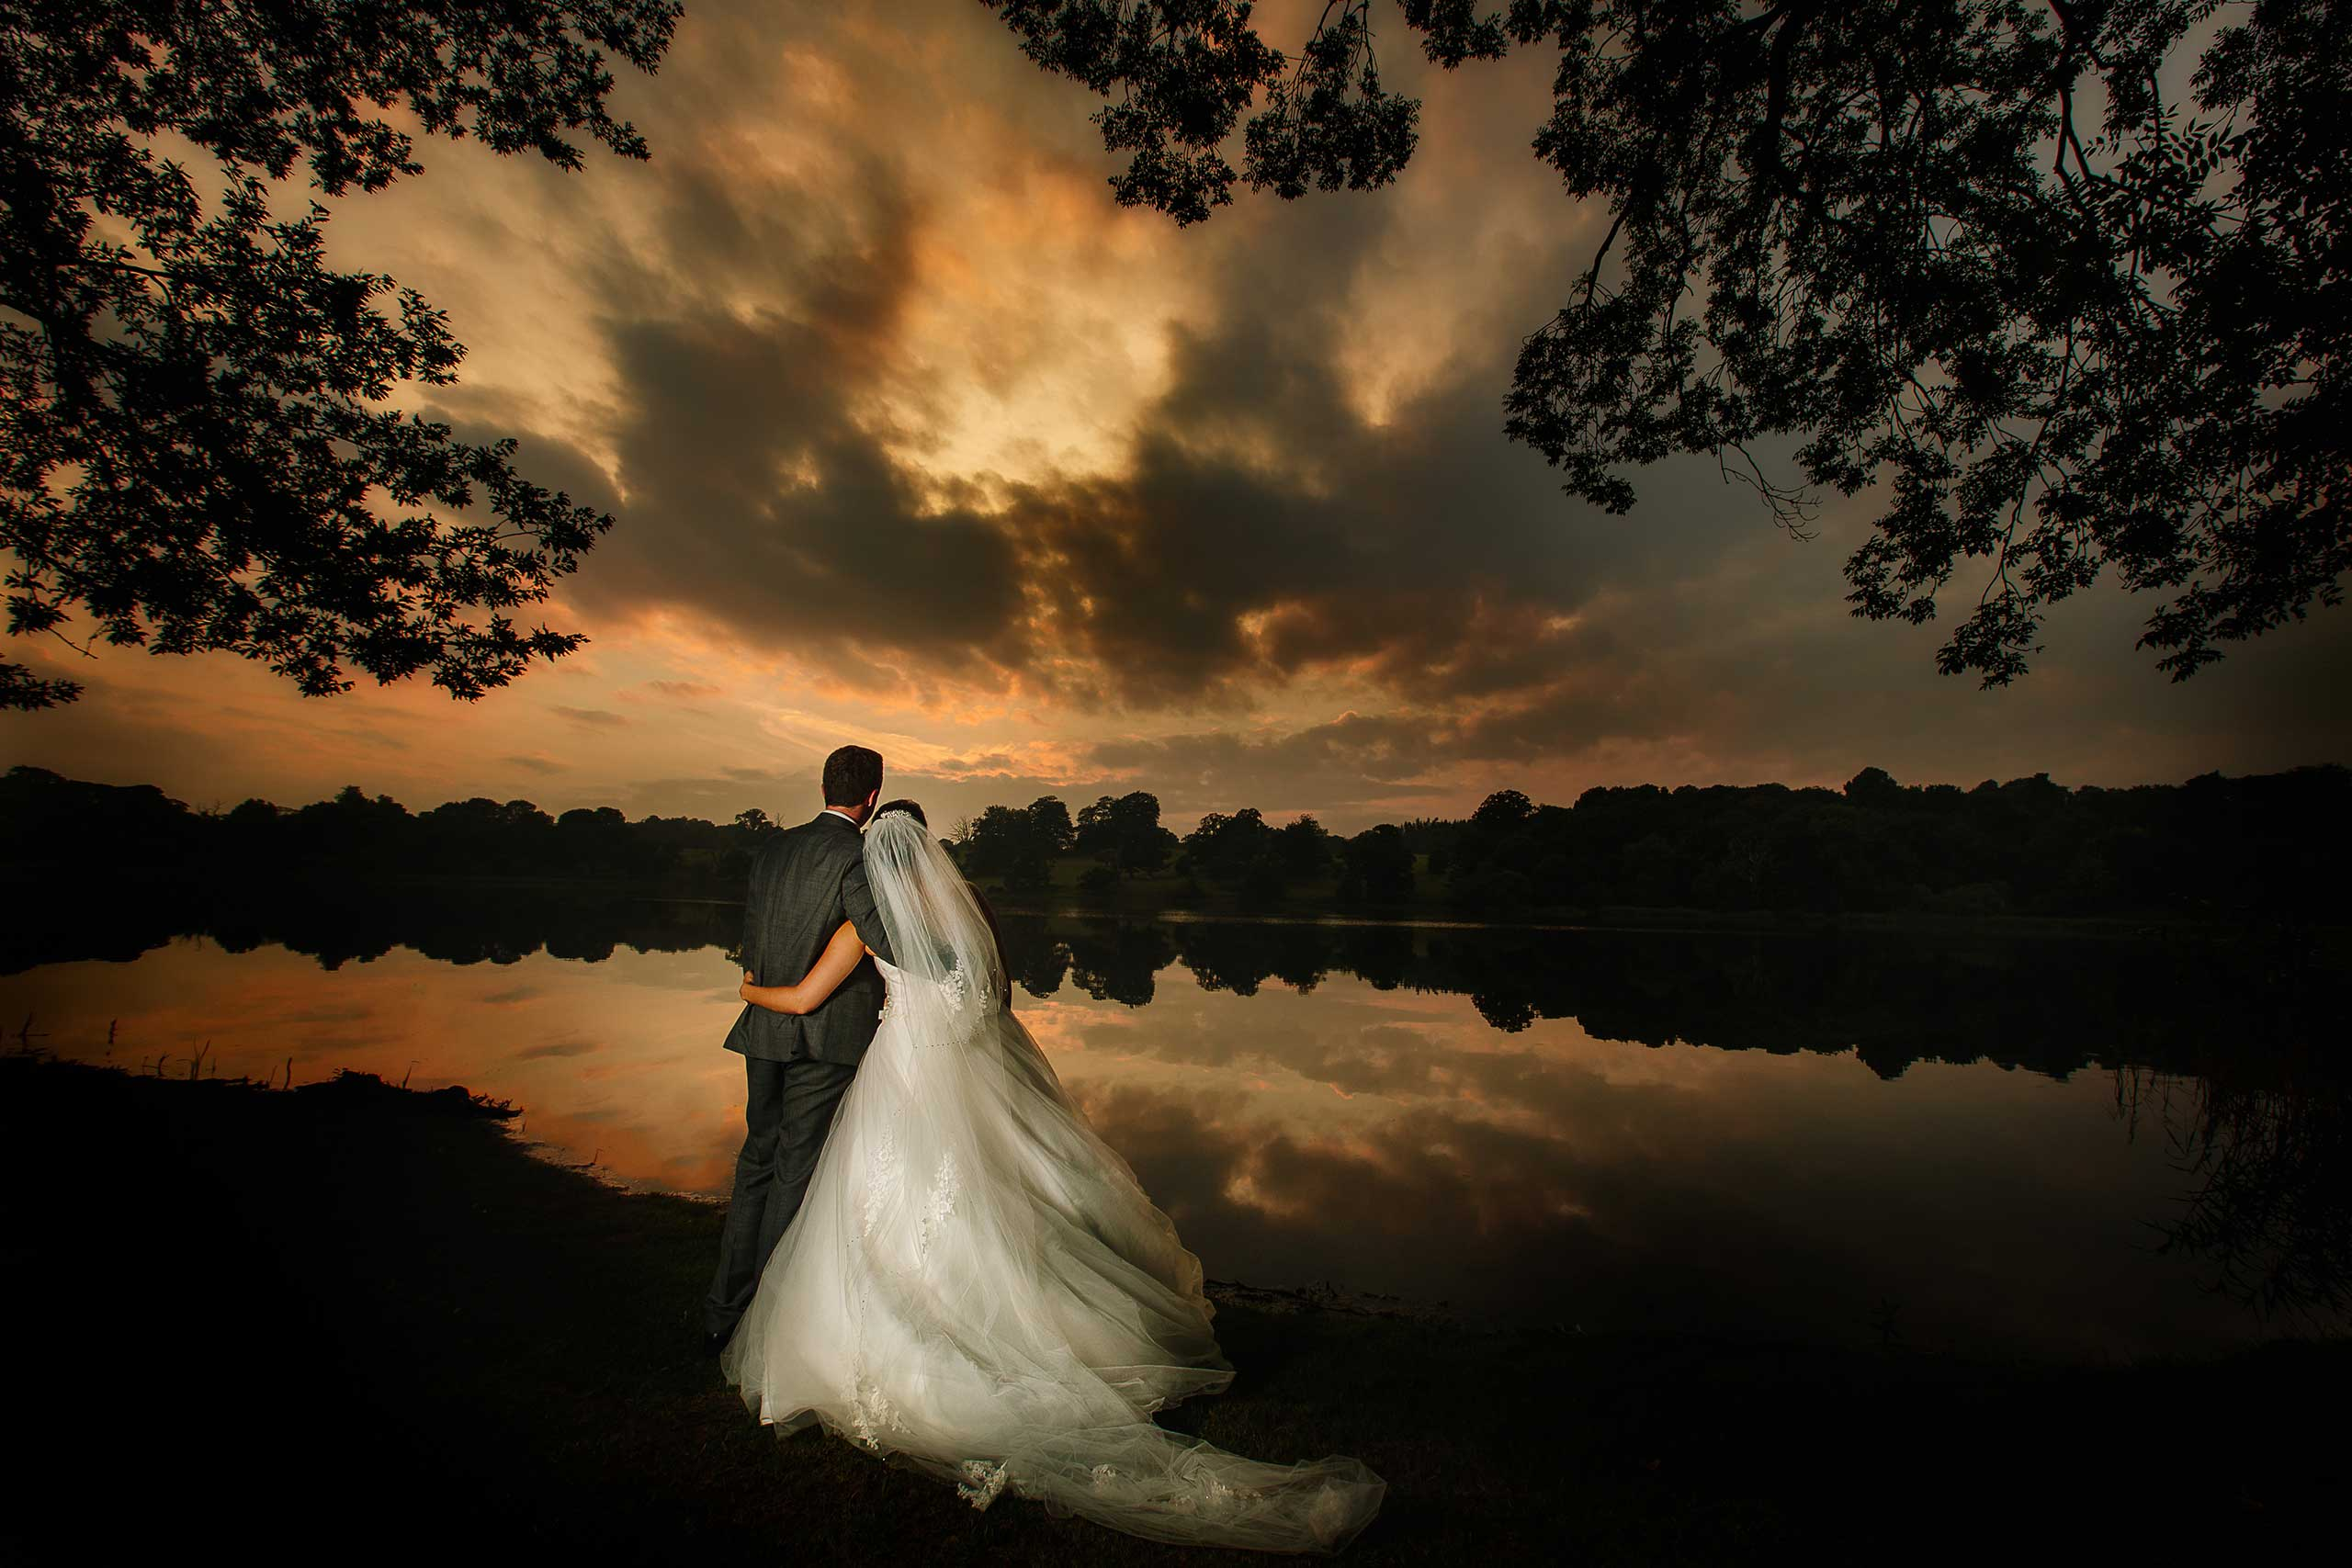 Golden hour wedding photograph at Combermere Abbey by the lakeside